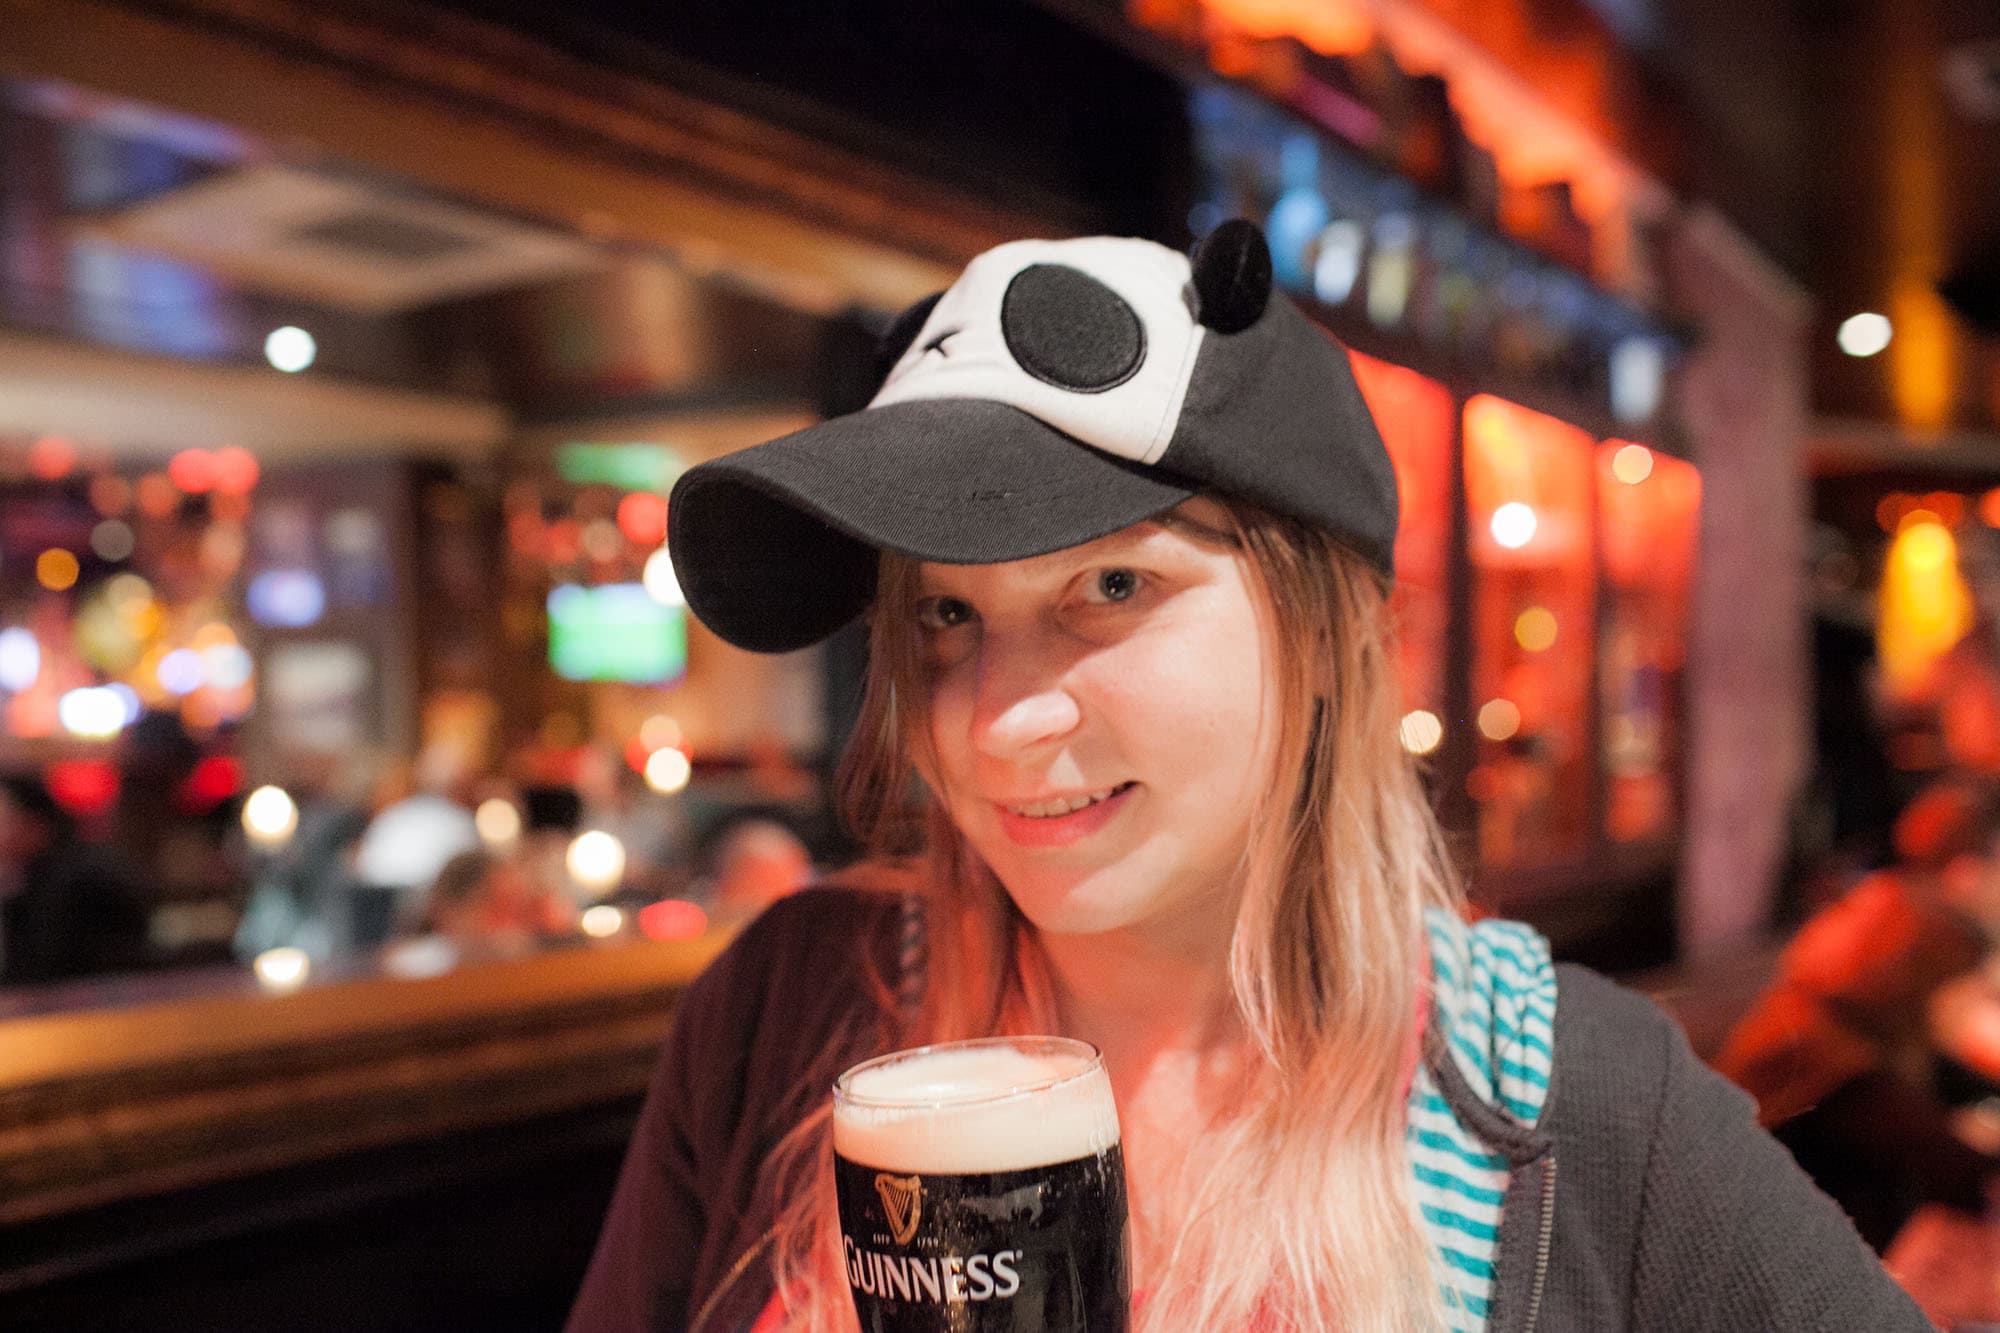 Drinking pints at a pub in Dublin, Ireland